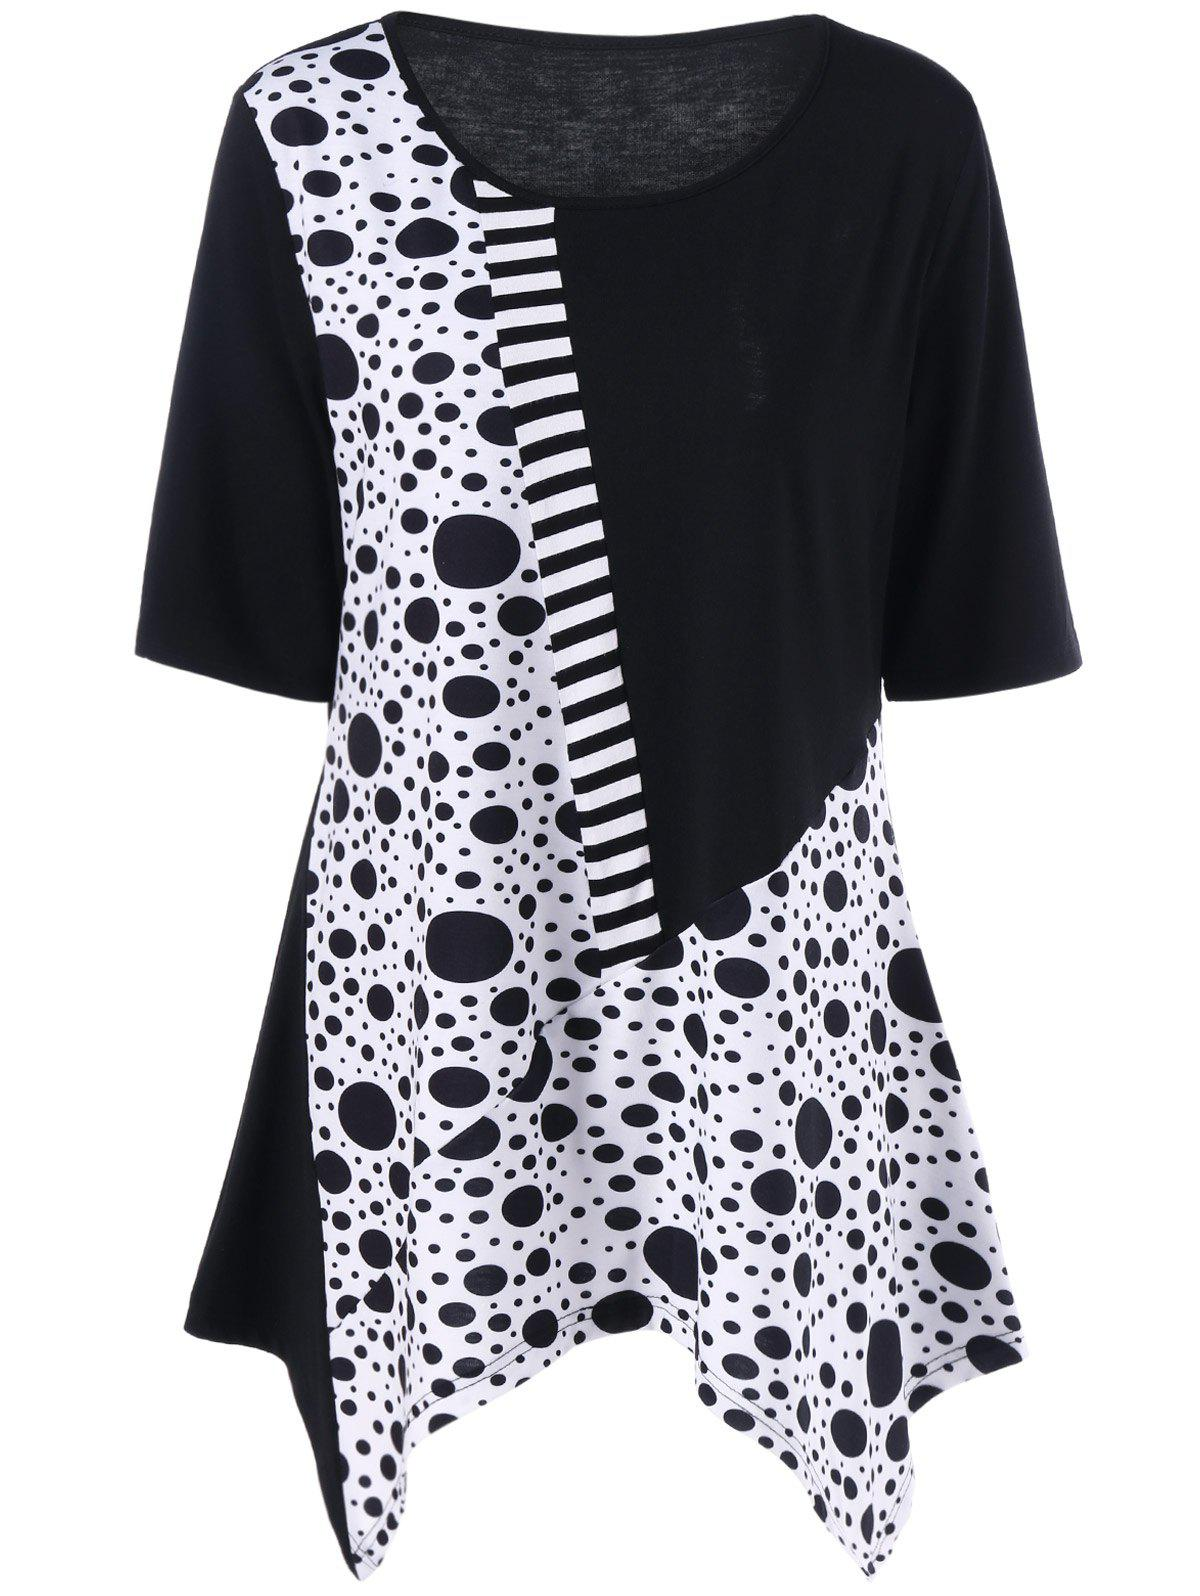 Plus Size Polka Dot Panel Asymmetric T-Shirt plus size polka dot baggy t shirt